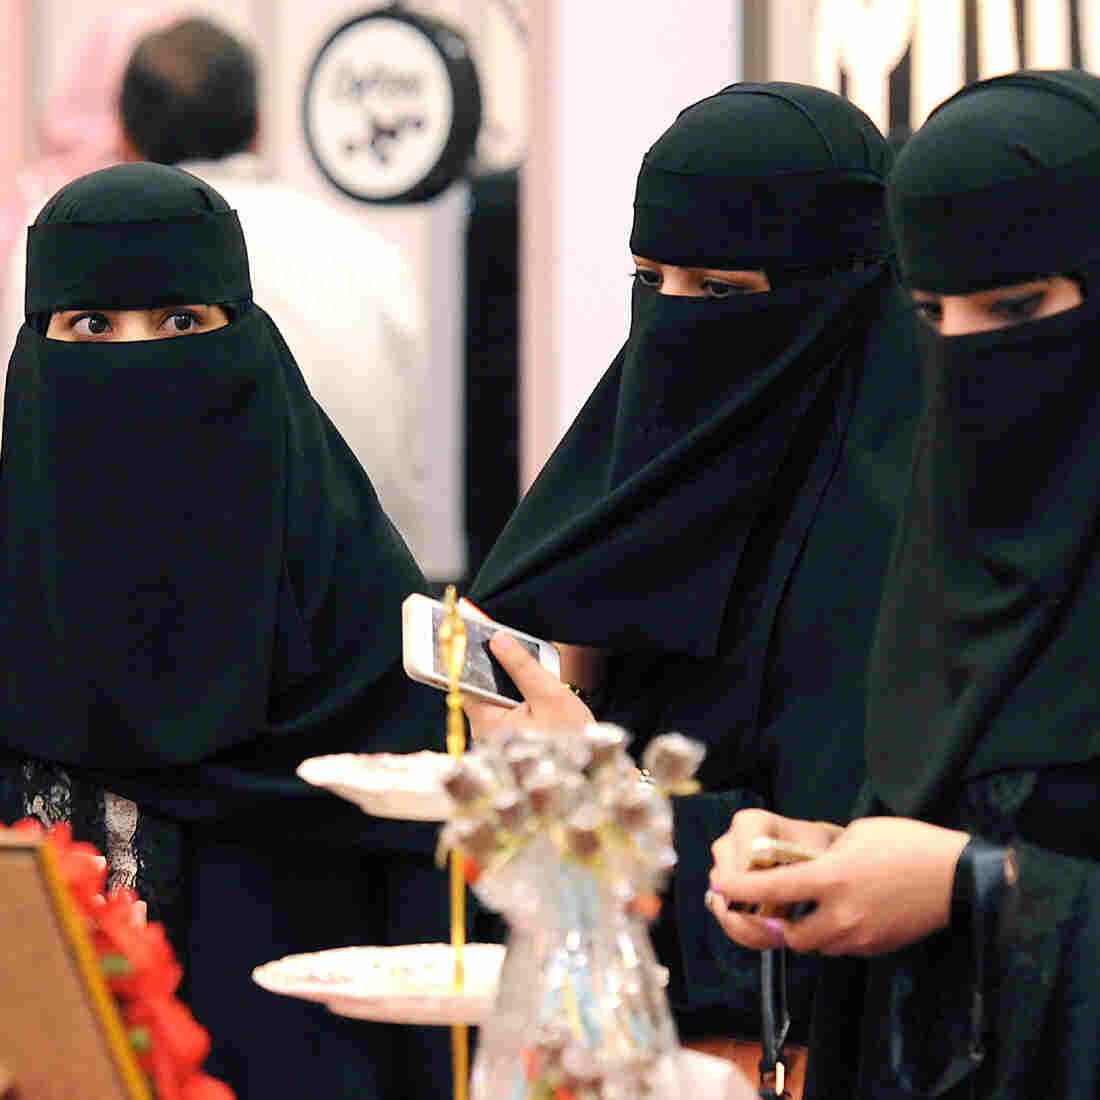 Saudi Arabian women wear their traditional face covering, the niqab, at a coffee and chocolate exhibition in the capital Riyadh on Monday. A prominent religious figure said on Twitter that the face veil is not mandatory, sparking a heated national debate.